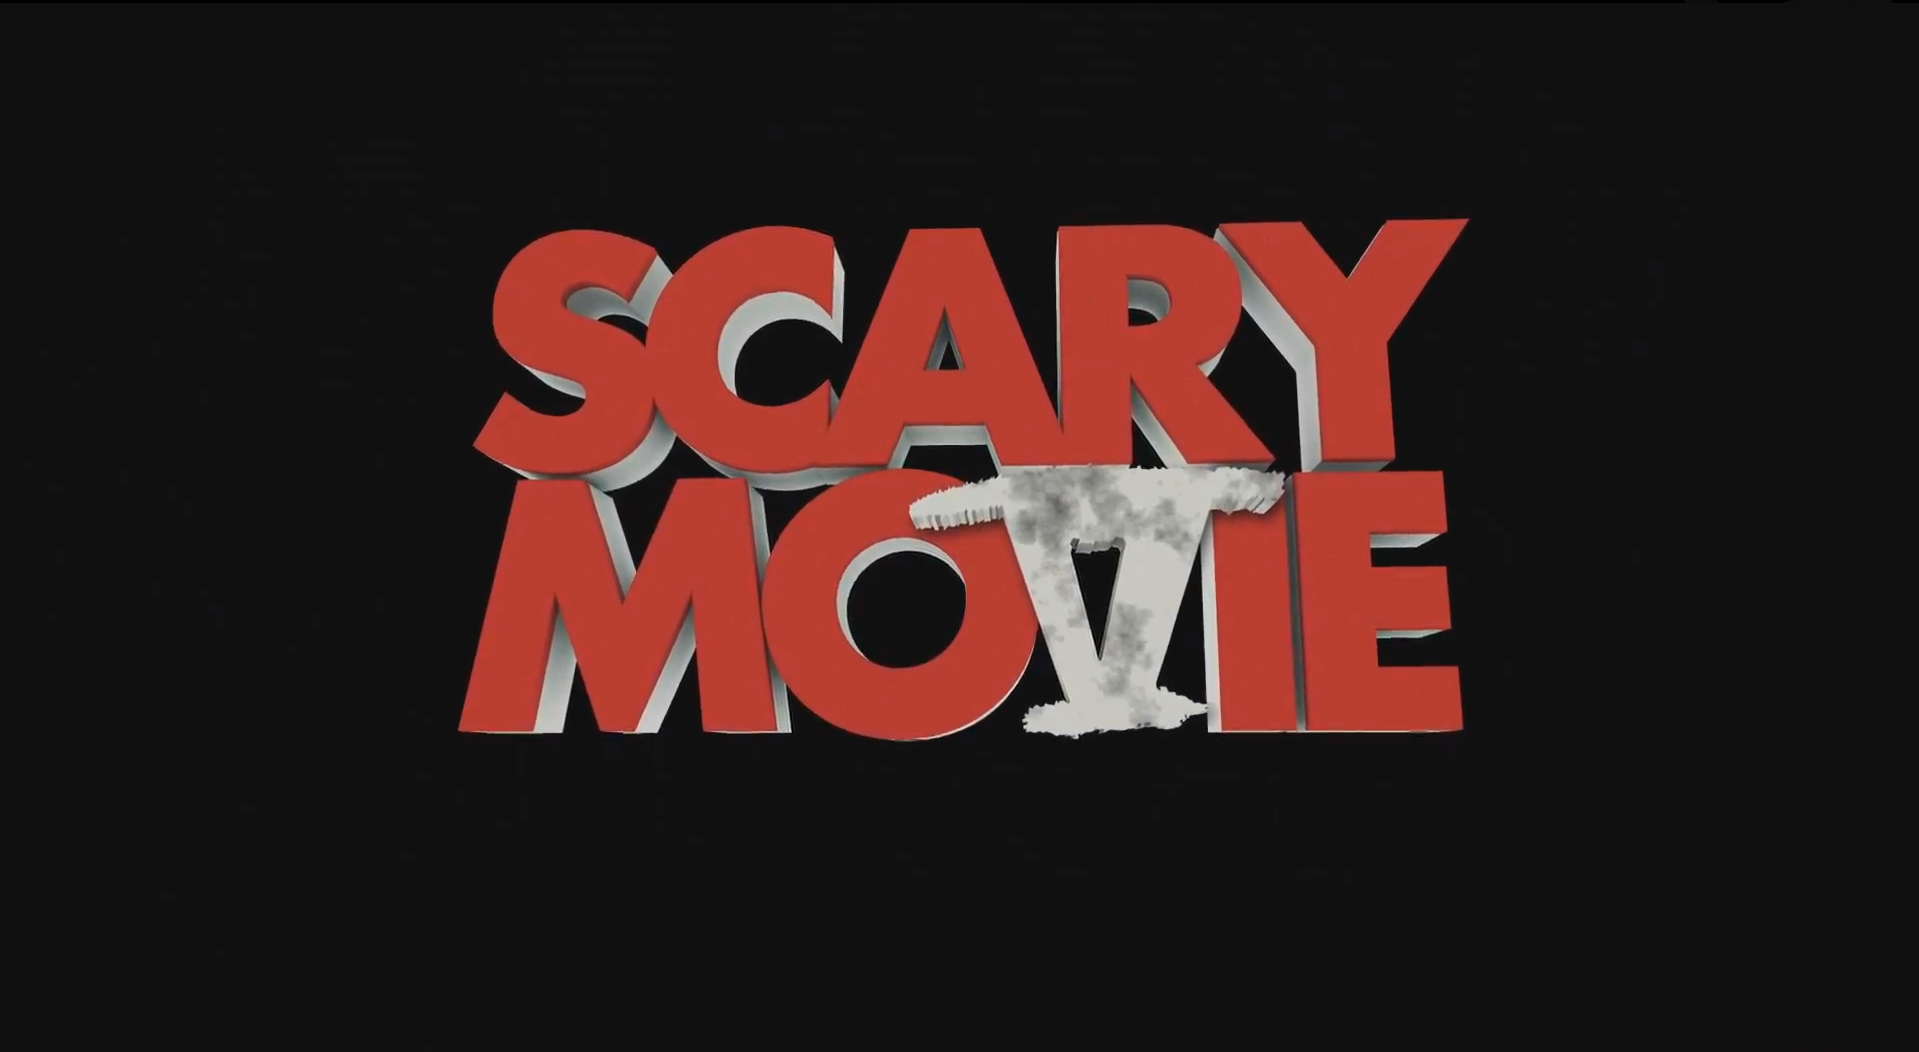 3 Scary Movie 5 Hd Wallpapers Background Images Wallpaper Abyss